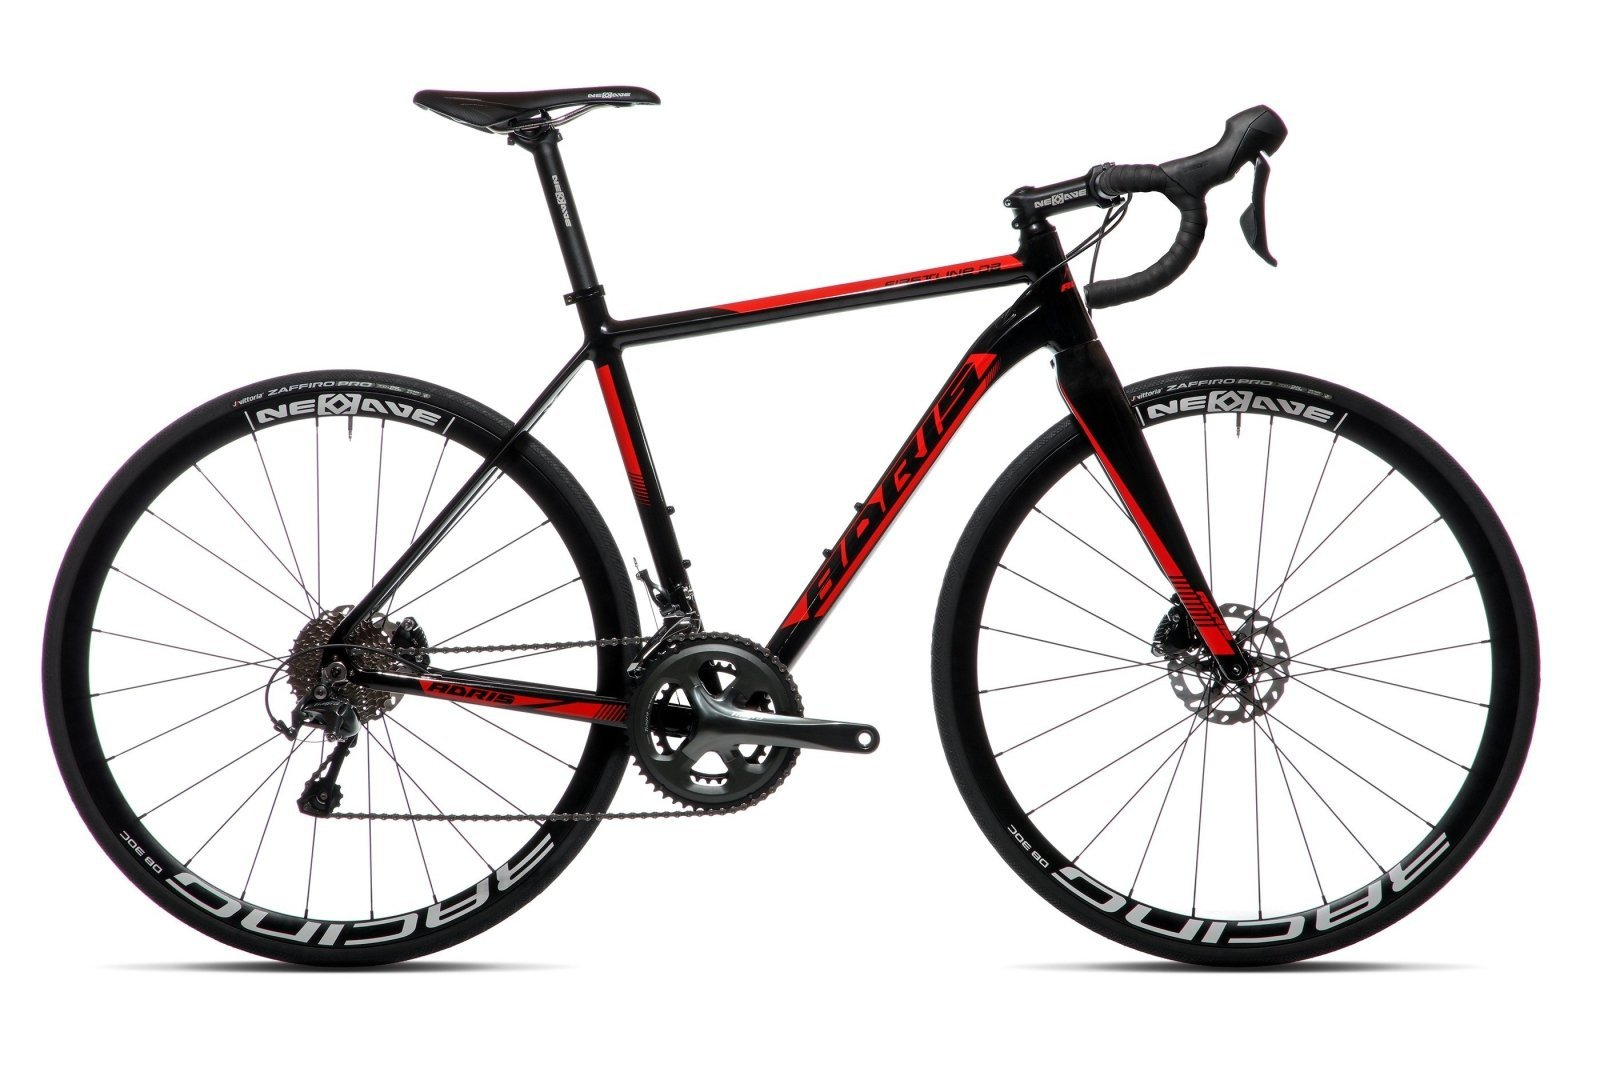 VELO ADRIS FIRSTLINE 5.1 DISC SHIMANO TIAGRA 4700 10V